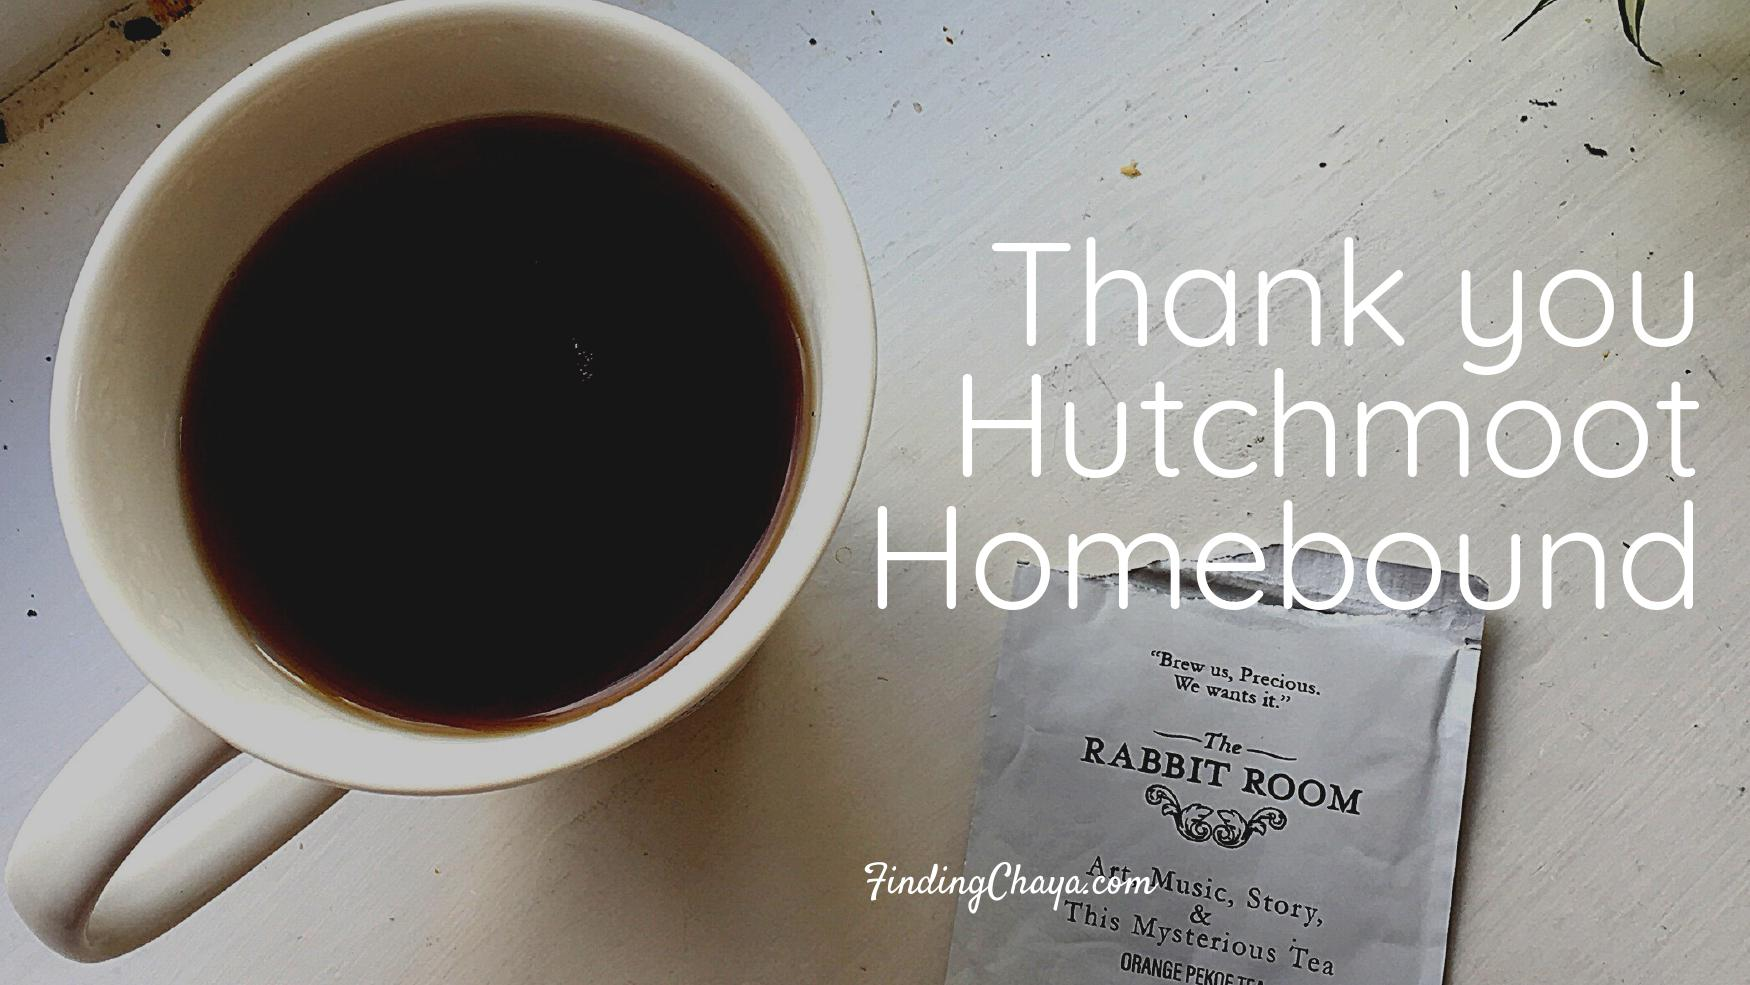 Thank you Hutchmoot Homebound